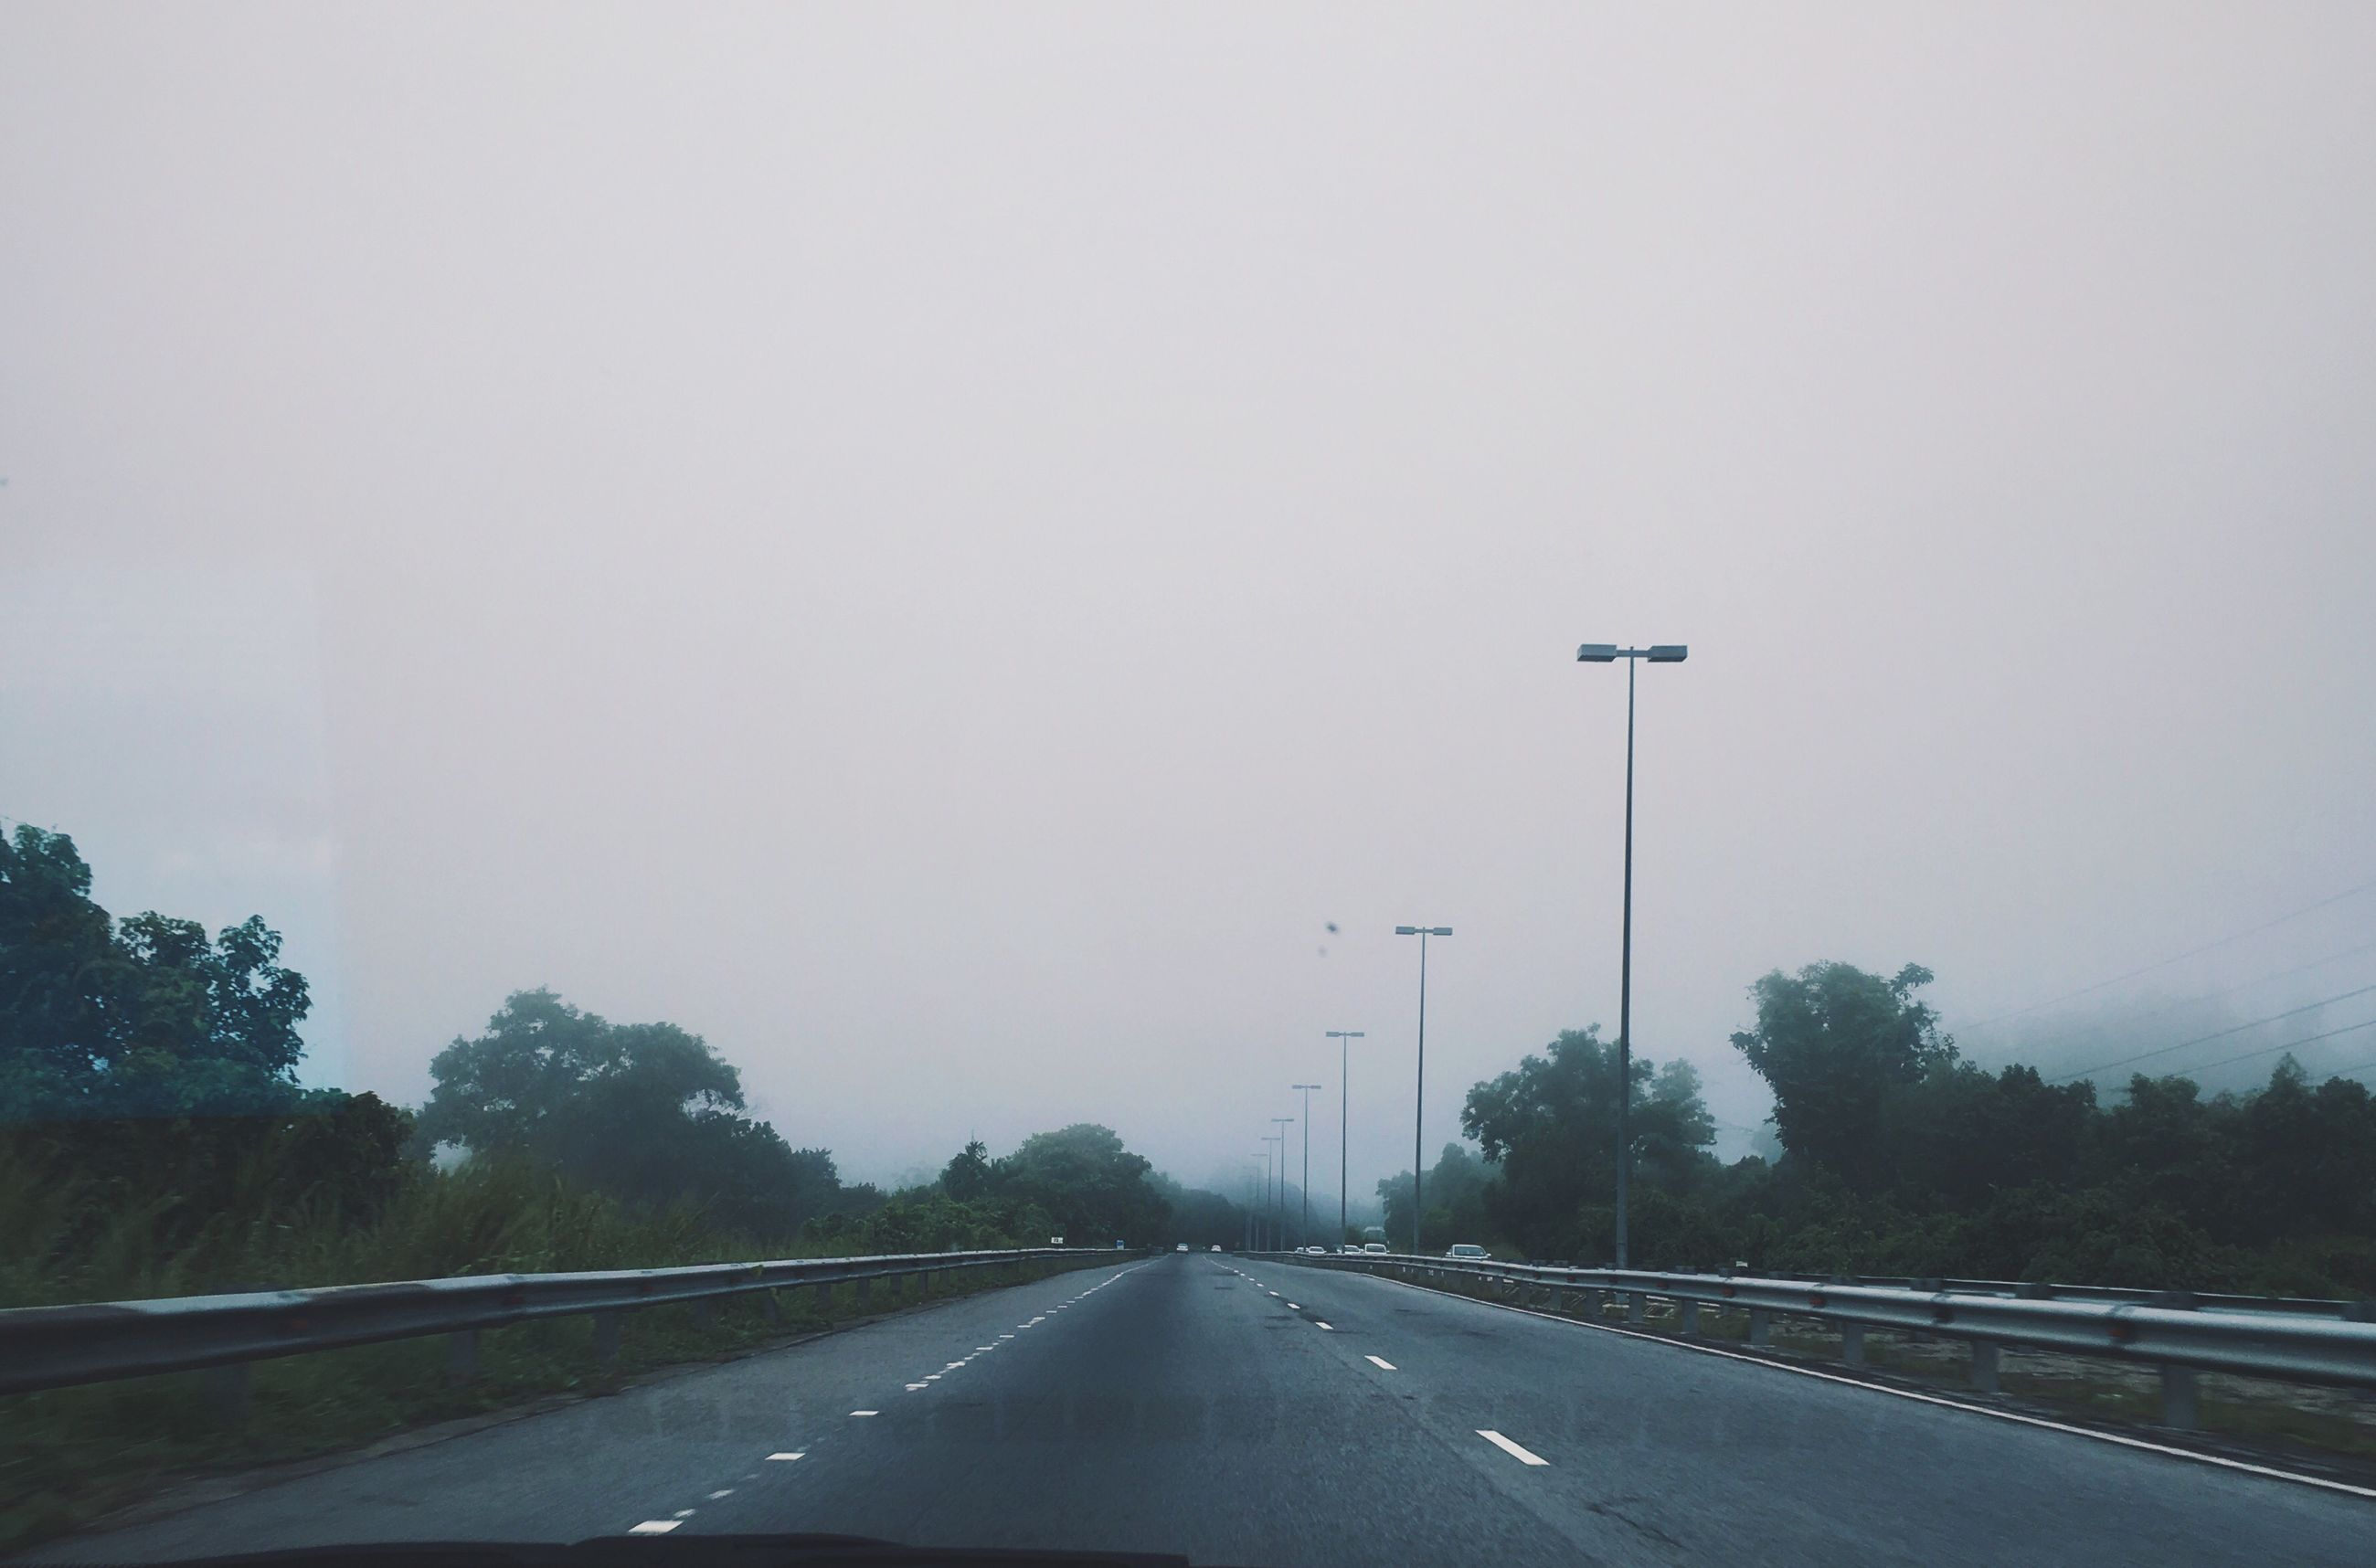 transportation, road, car, the way forward, no people, tree, highway, nature, land vehicle, car interior, day, outdoors, sky